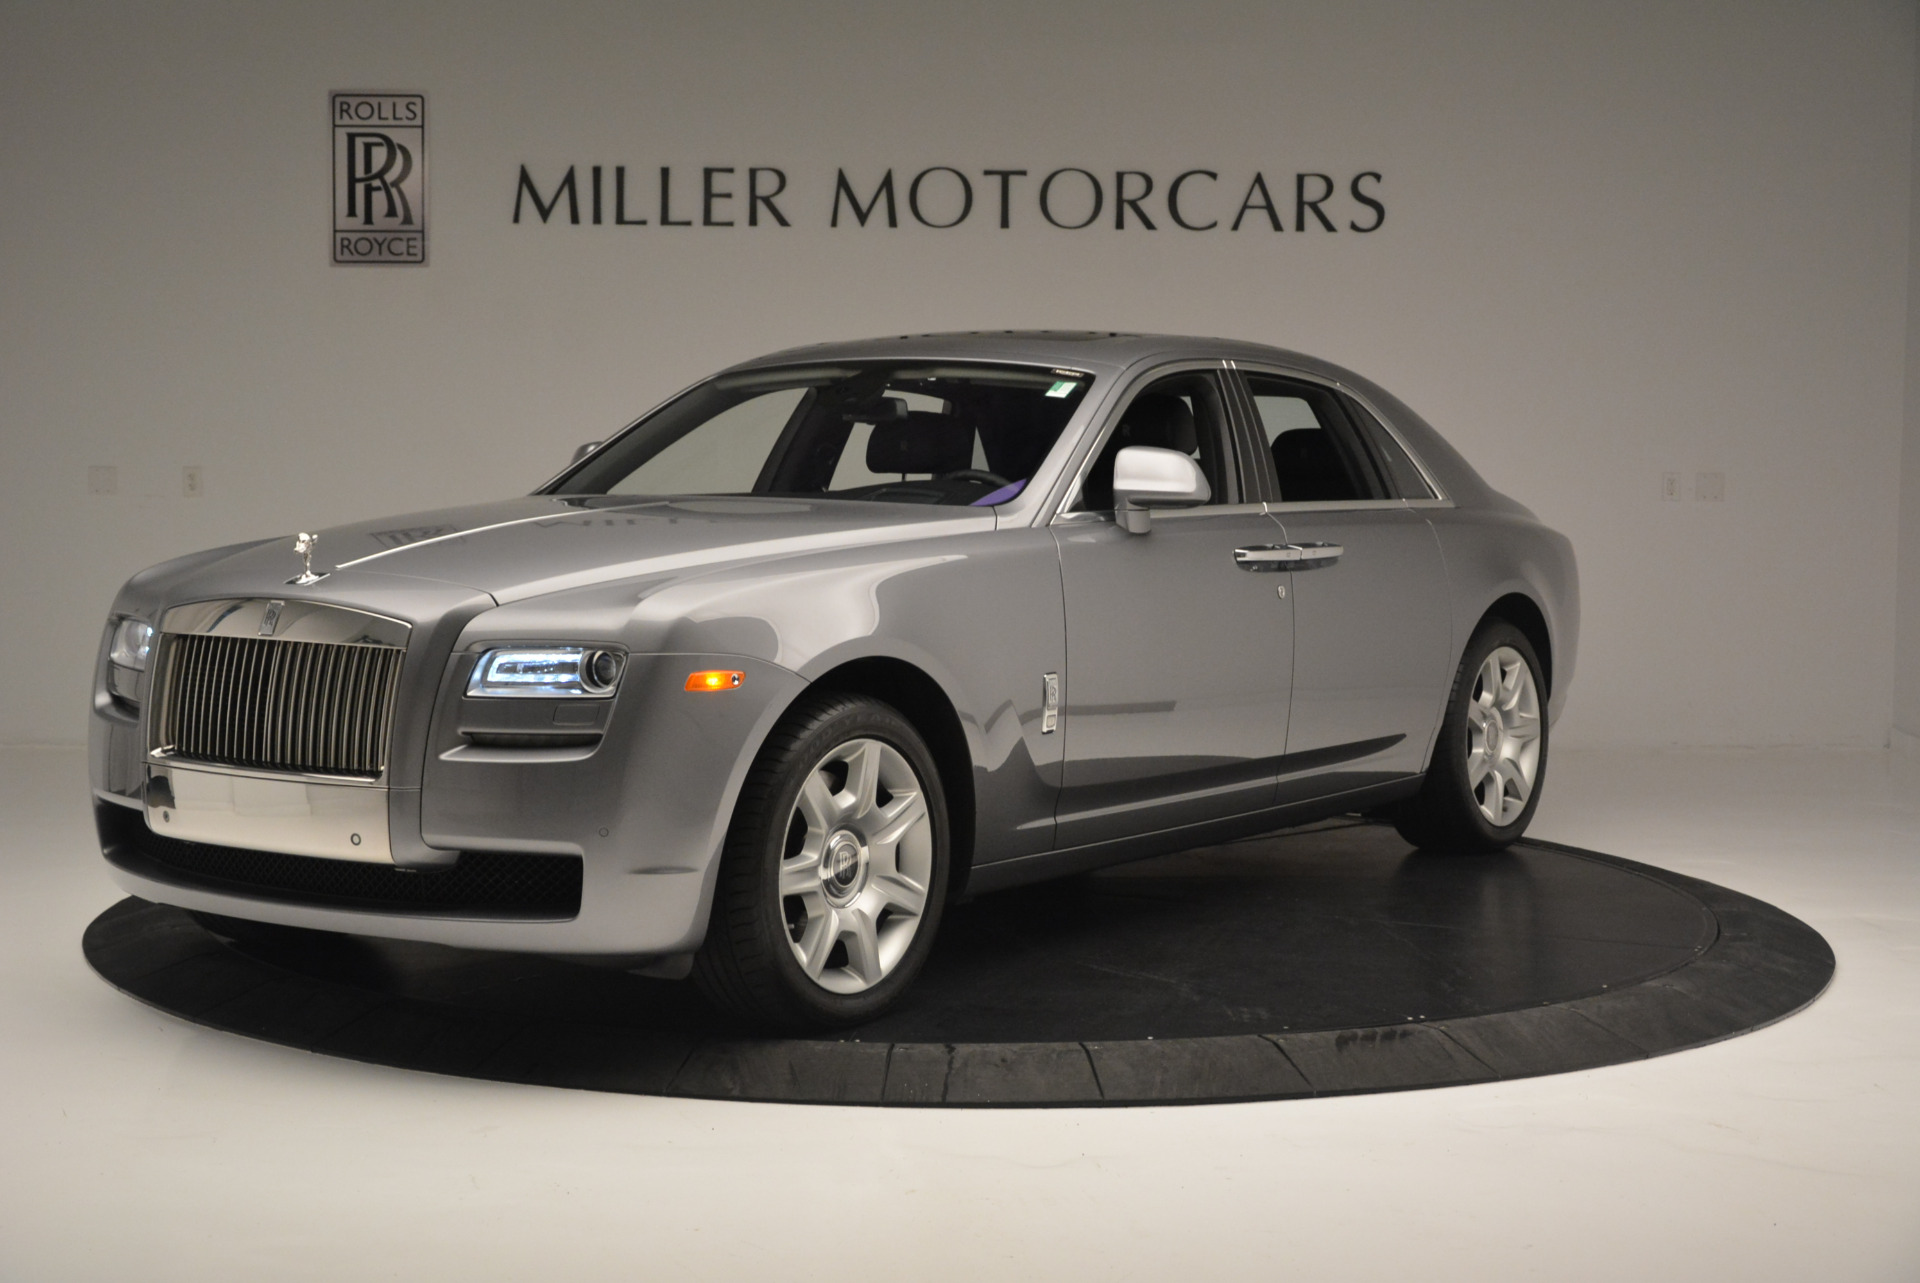 Used 2012 Rolls-Royce Ghost for sale Sold at Bentley Greenwich in Greenwich CT 06830 1